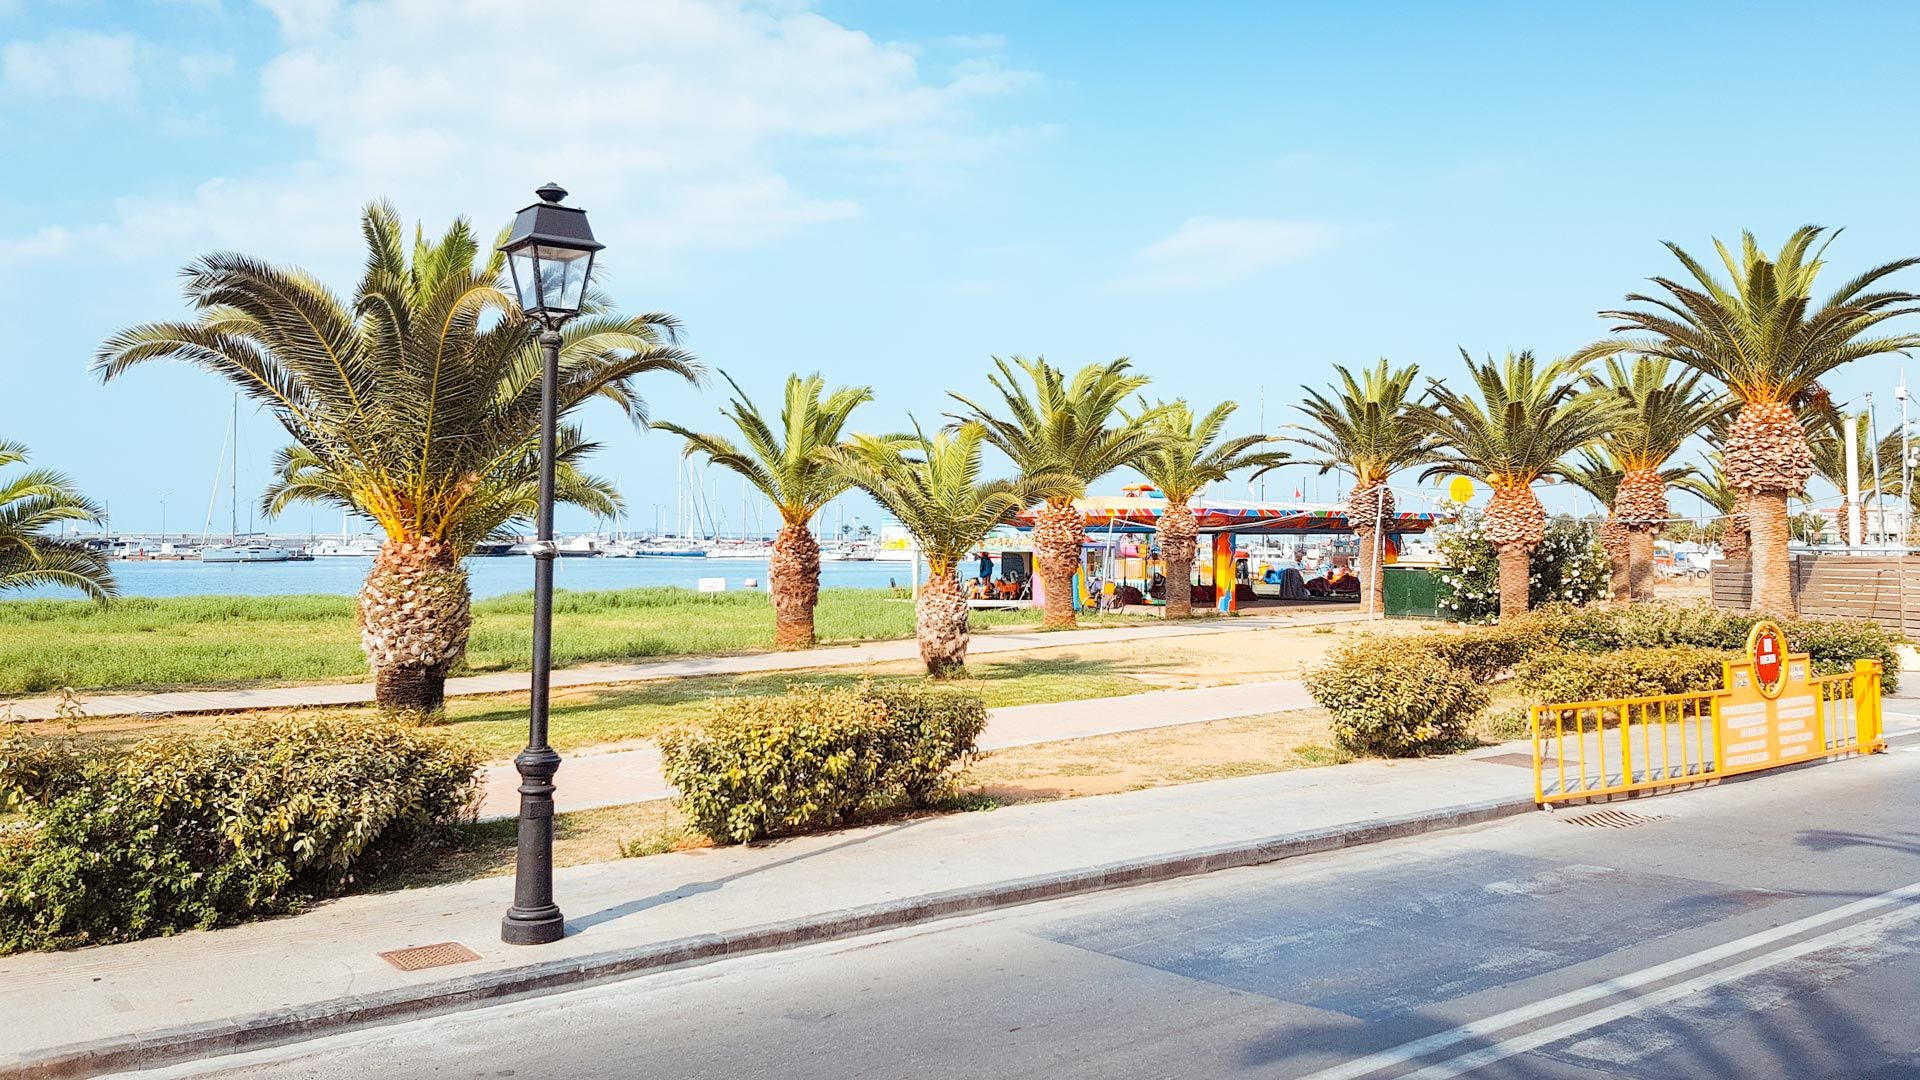 You can end your walk with a stroll along the palm tree-lined Eleftheriou Venizelou waterfront towards the new marina